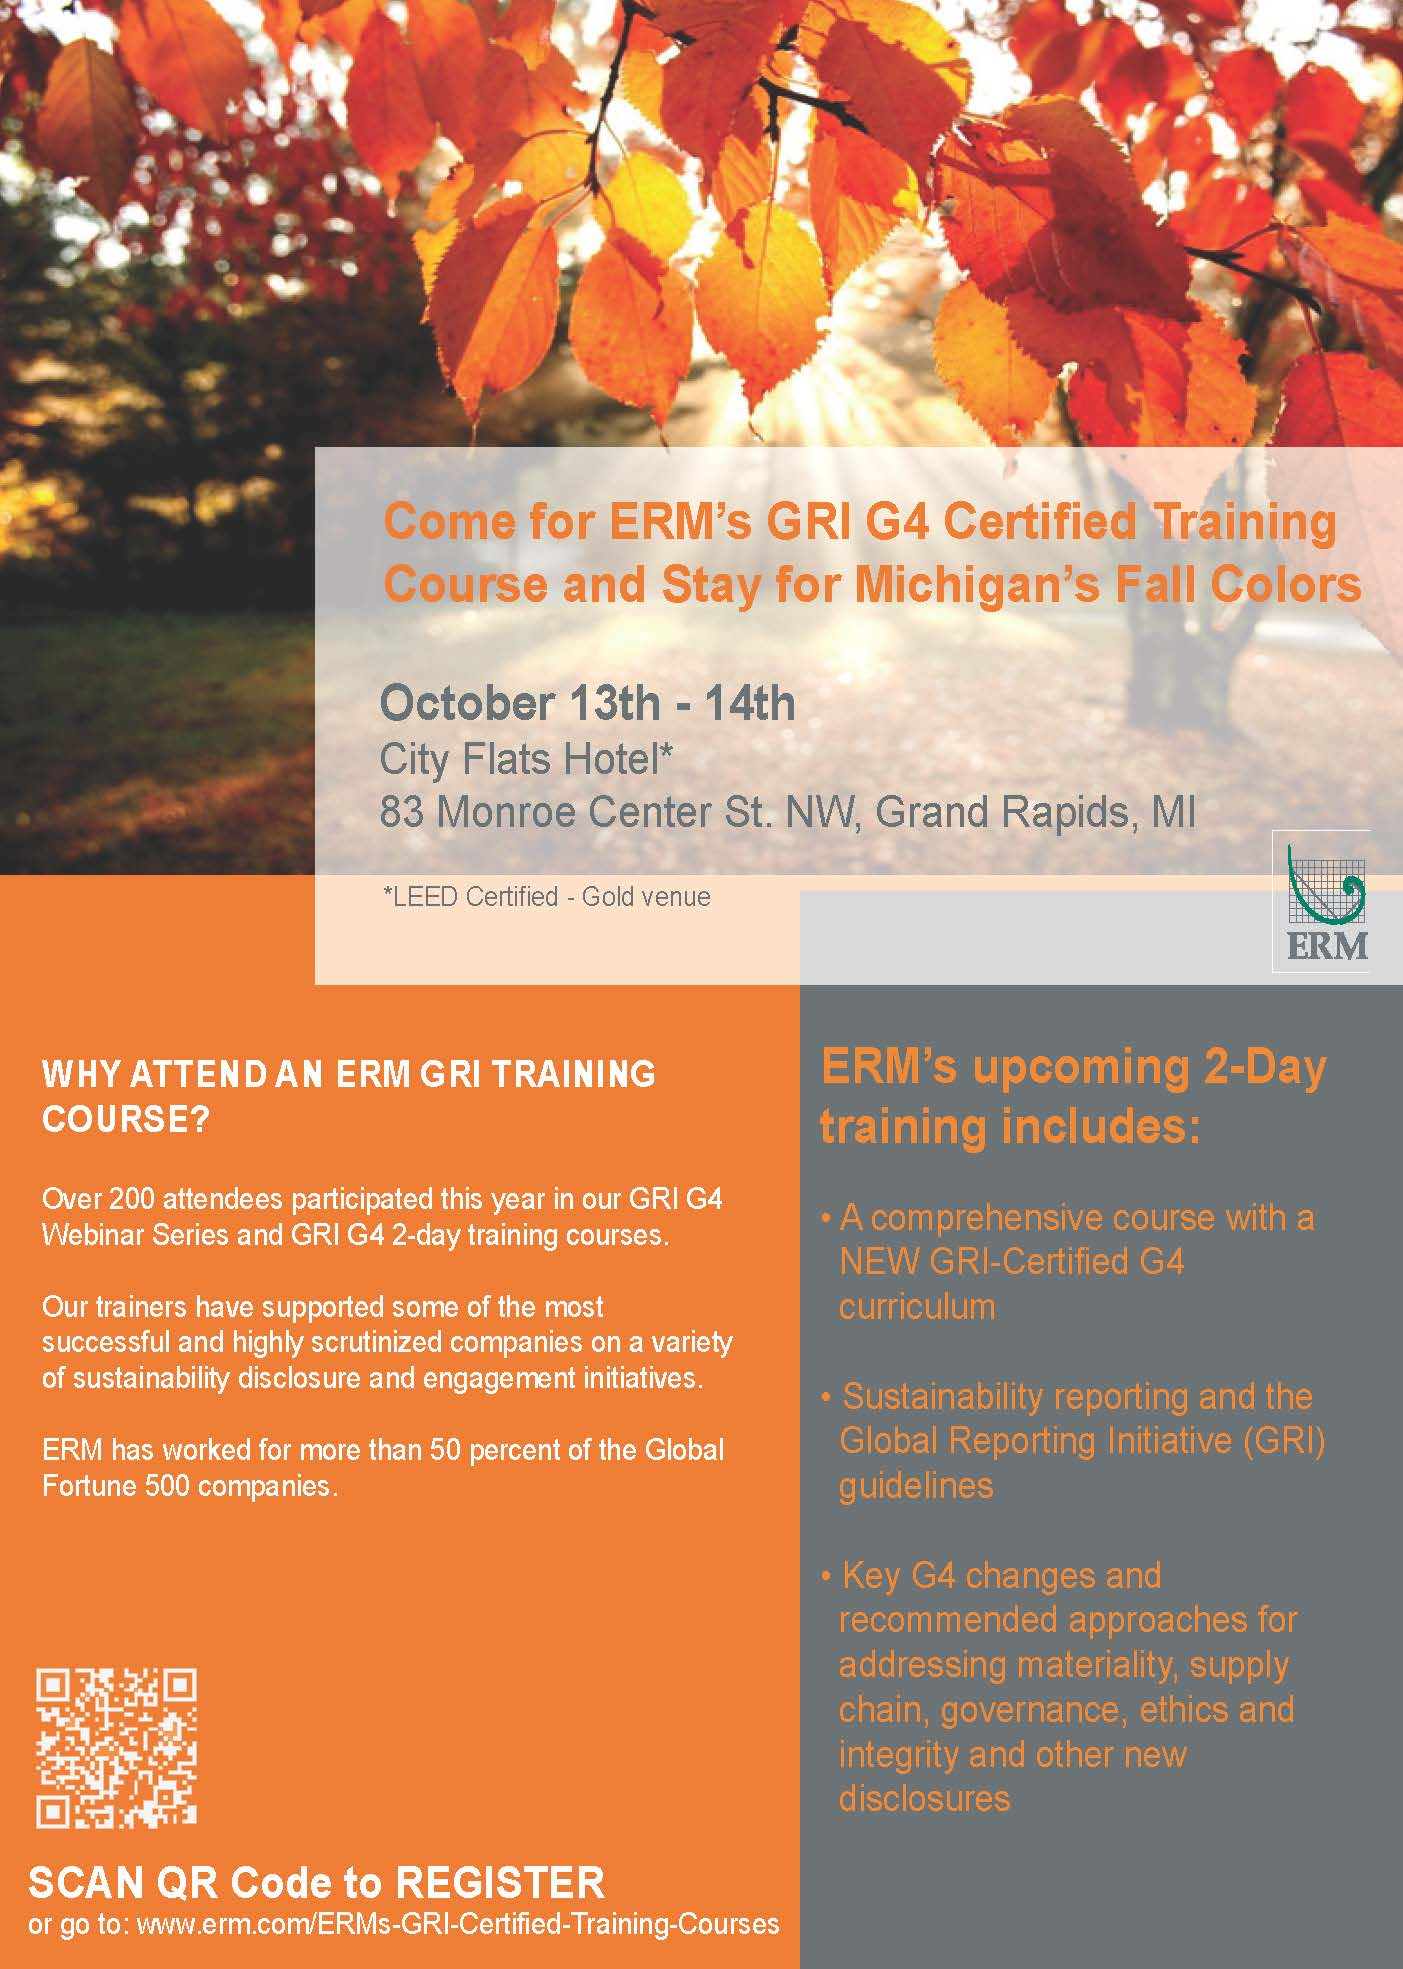 Gri g4 certified training course october 13 west michigan gri flyer fall 2014 michigan training 2 1betcityfo Gallery